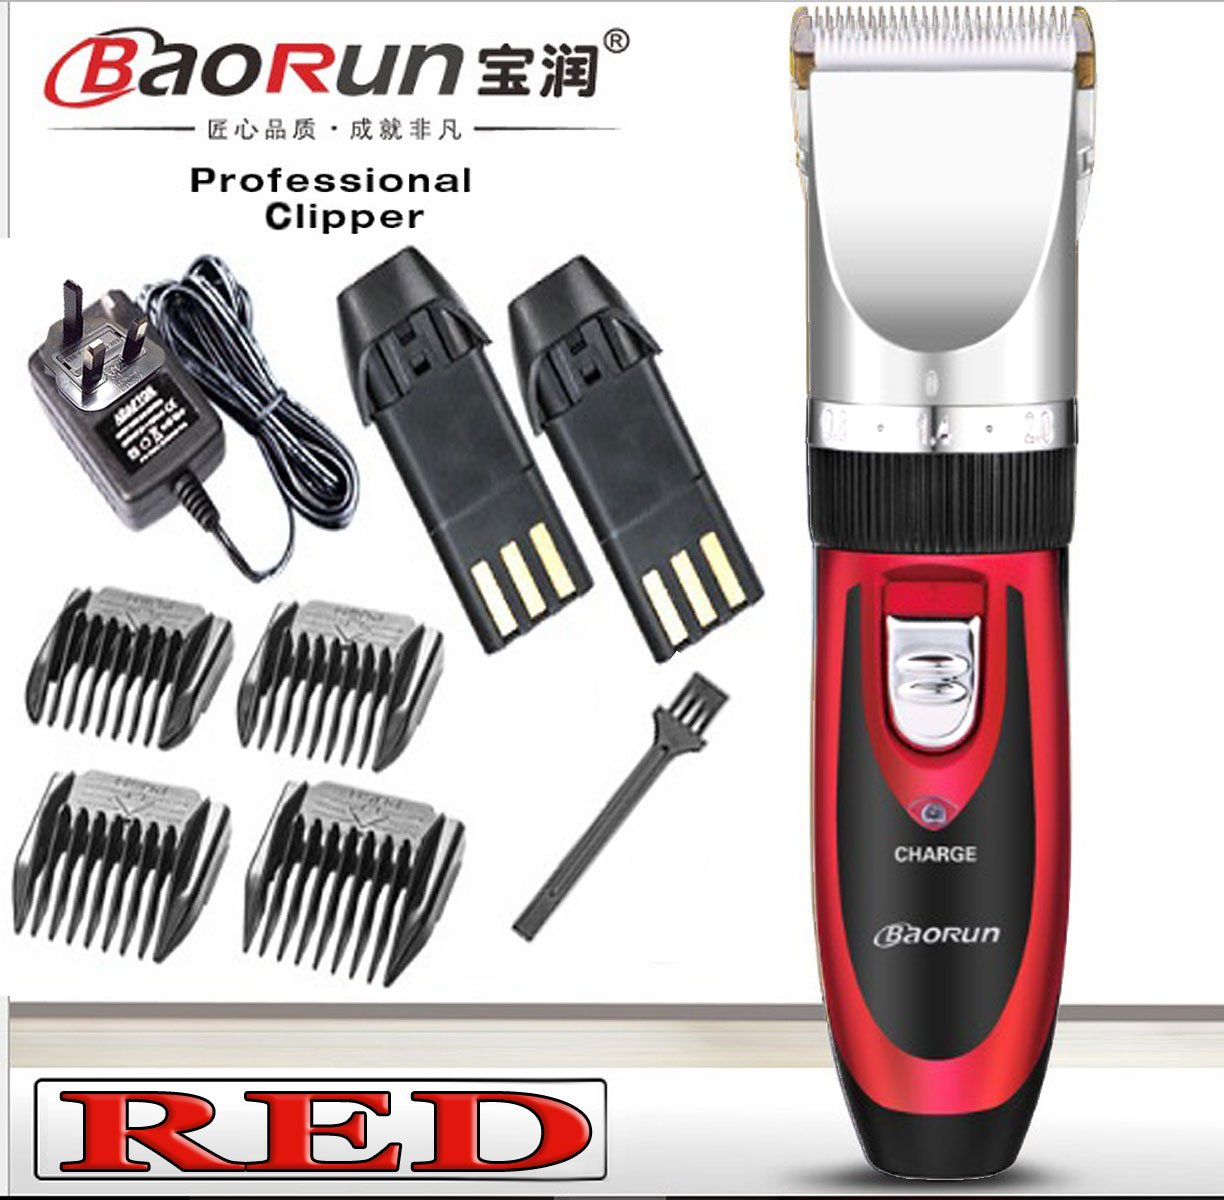 quiet hair clippers cordless Super Quiet Cordless battery Electric Hair Cutting Machine RECHARGEABLE HAIR CLIPPER TRIMMER home Barber Clippers Set (RED) EASY LINK